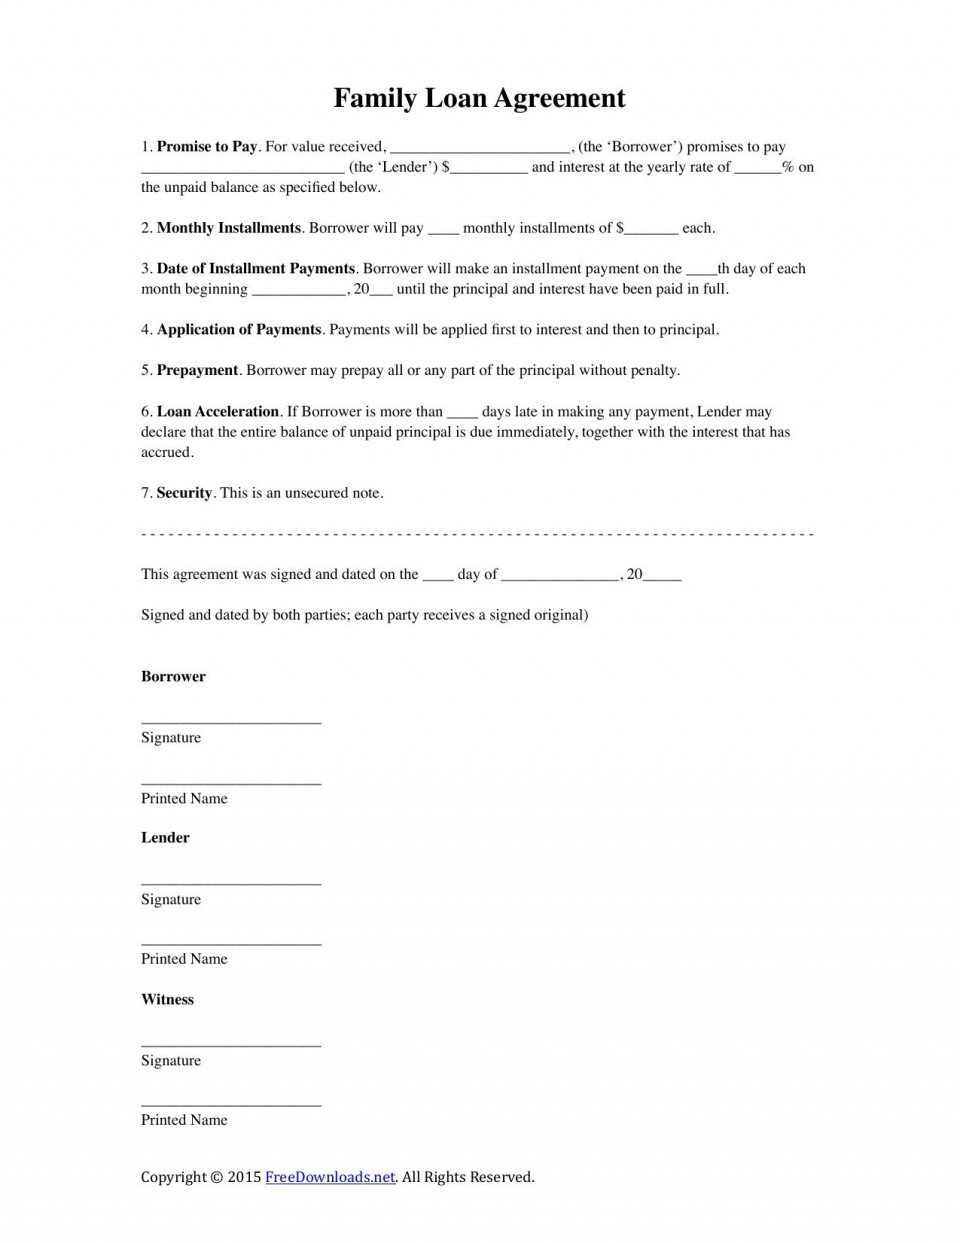 002 Stunning Family Loan Agreement Template Highest Clarity  Nz Uk Free960